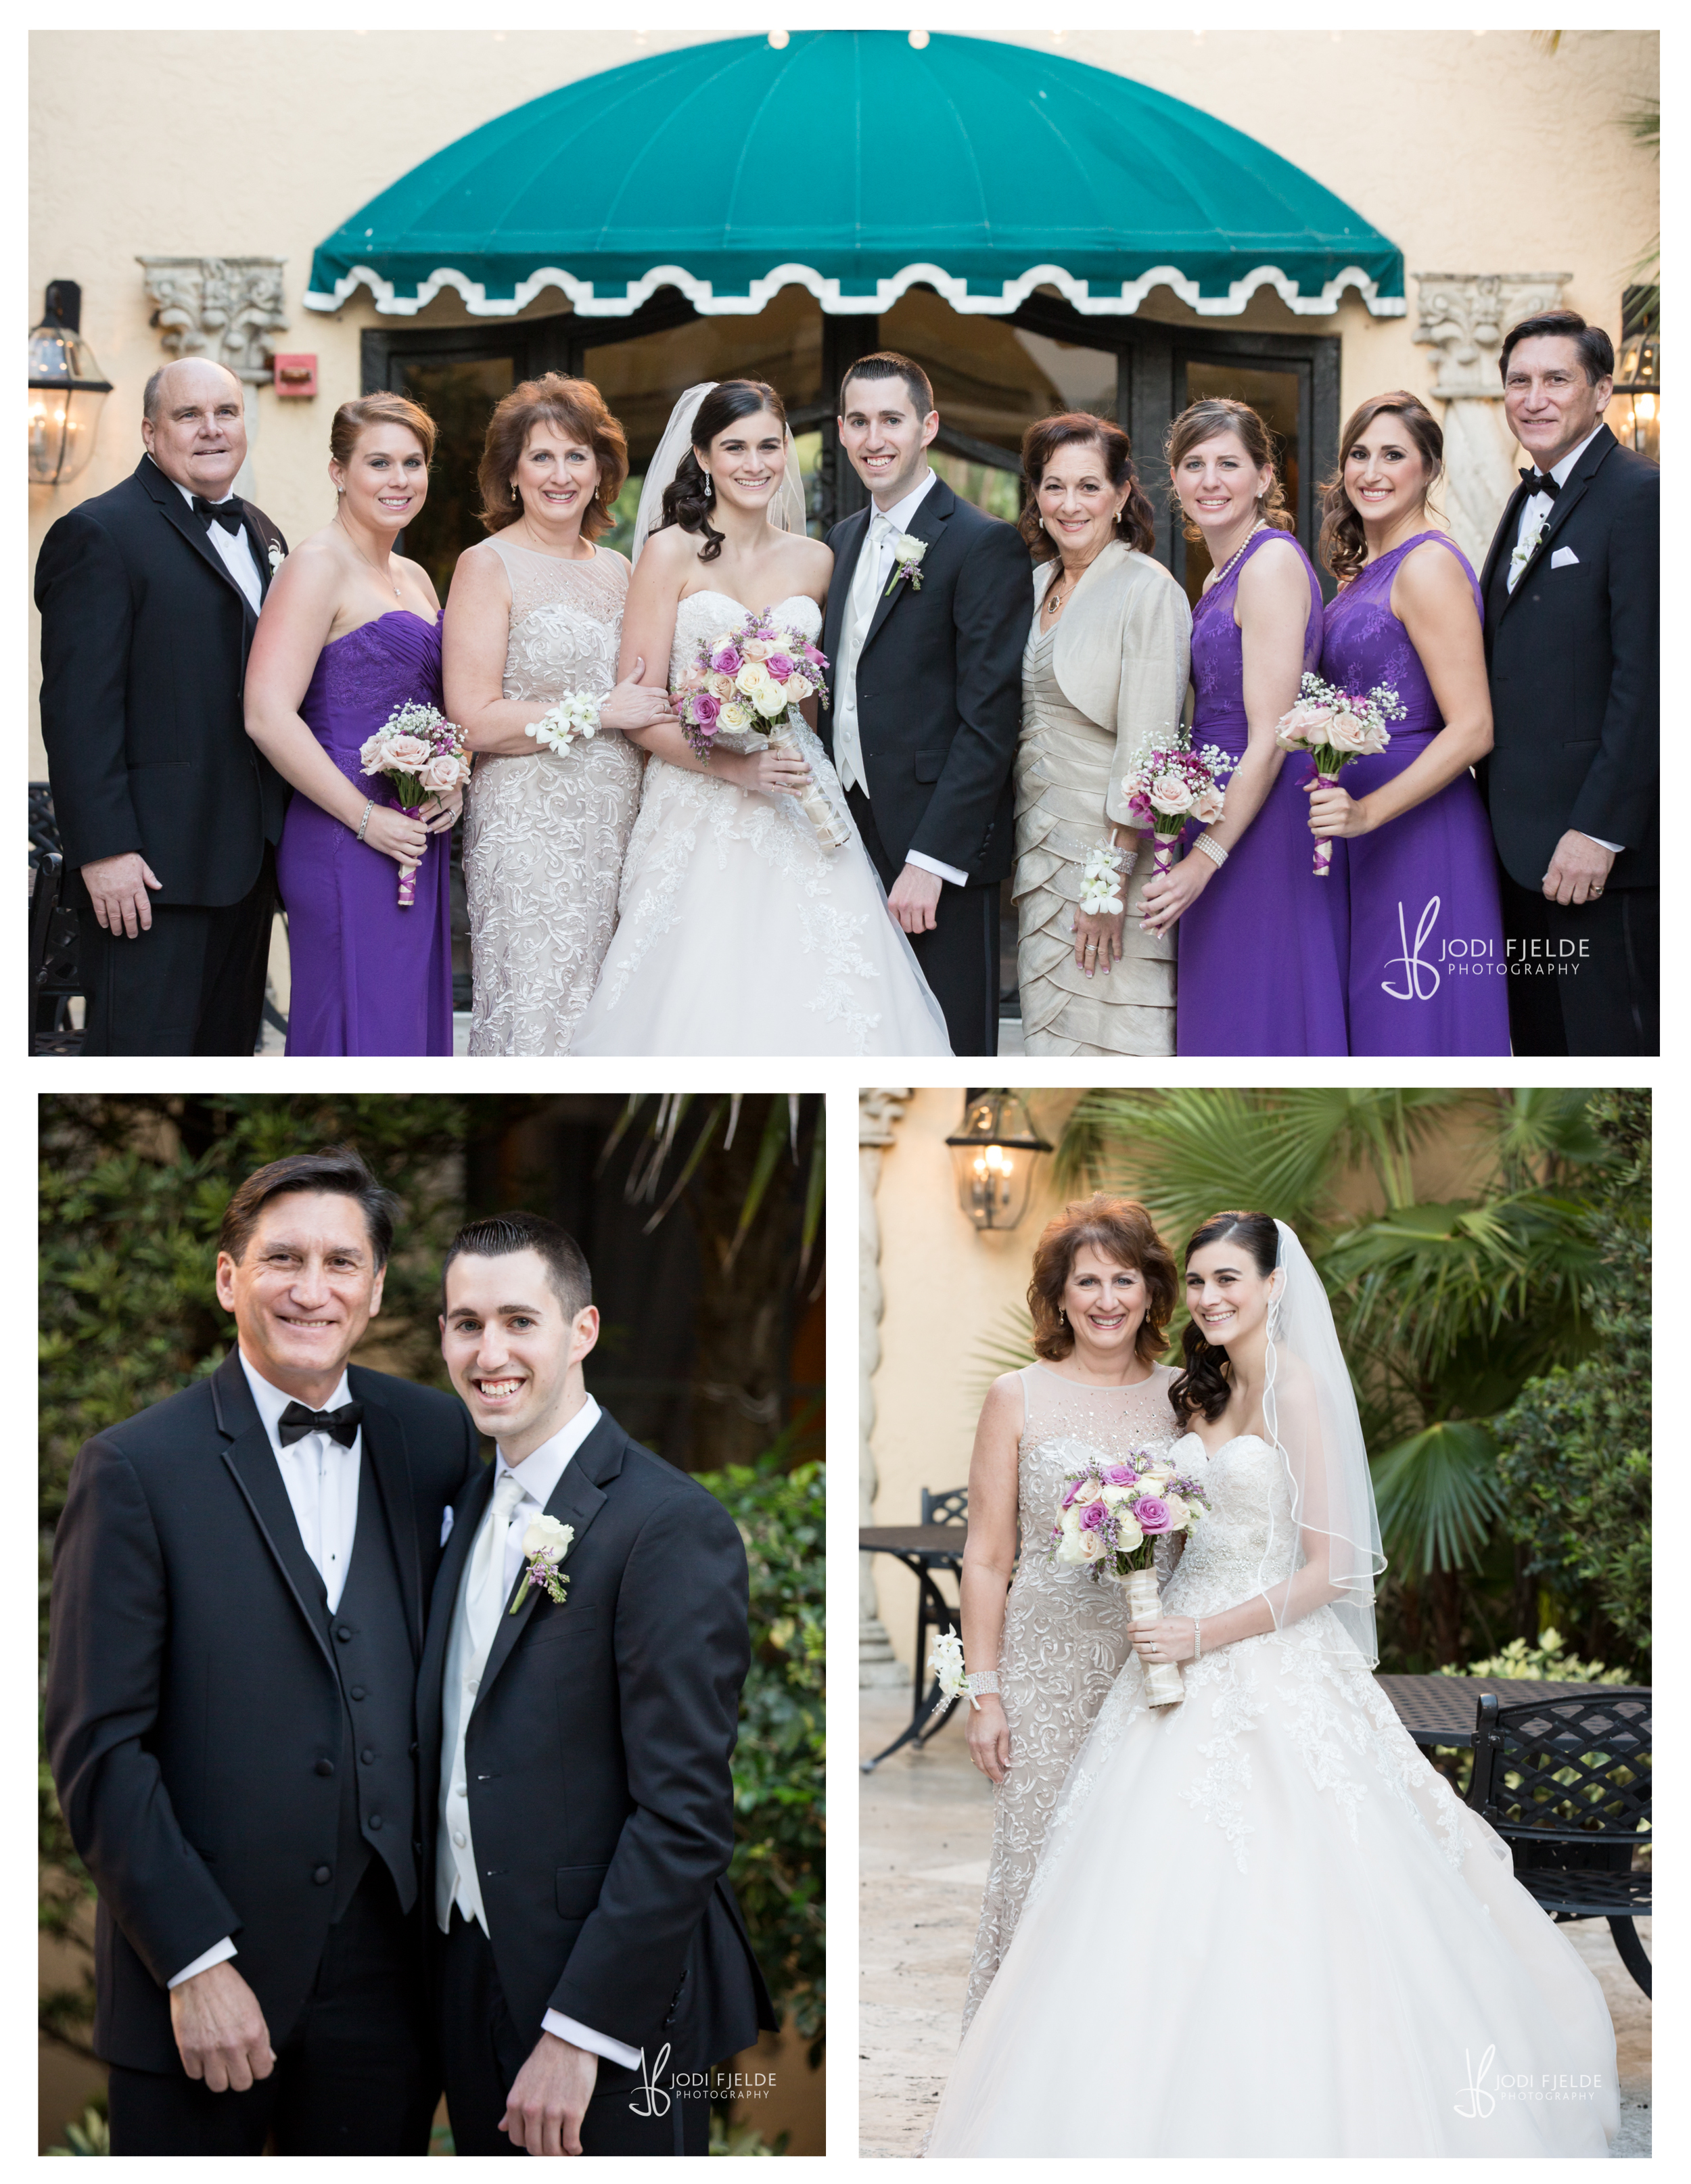 Benvenuto_Palm_Beach_Wedding_Jewish_Michelle & Jason_Jodi_Fjedle_Photography 31.jpg